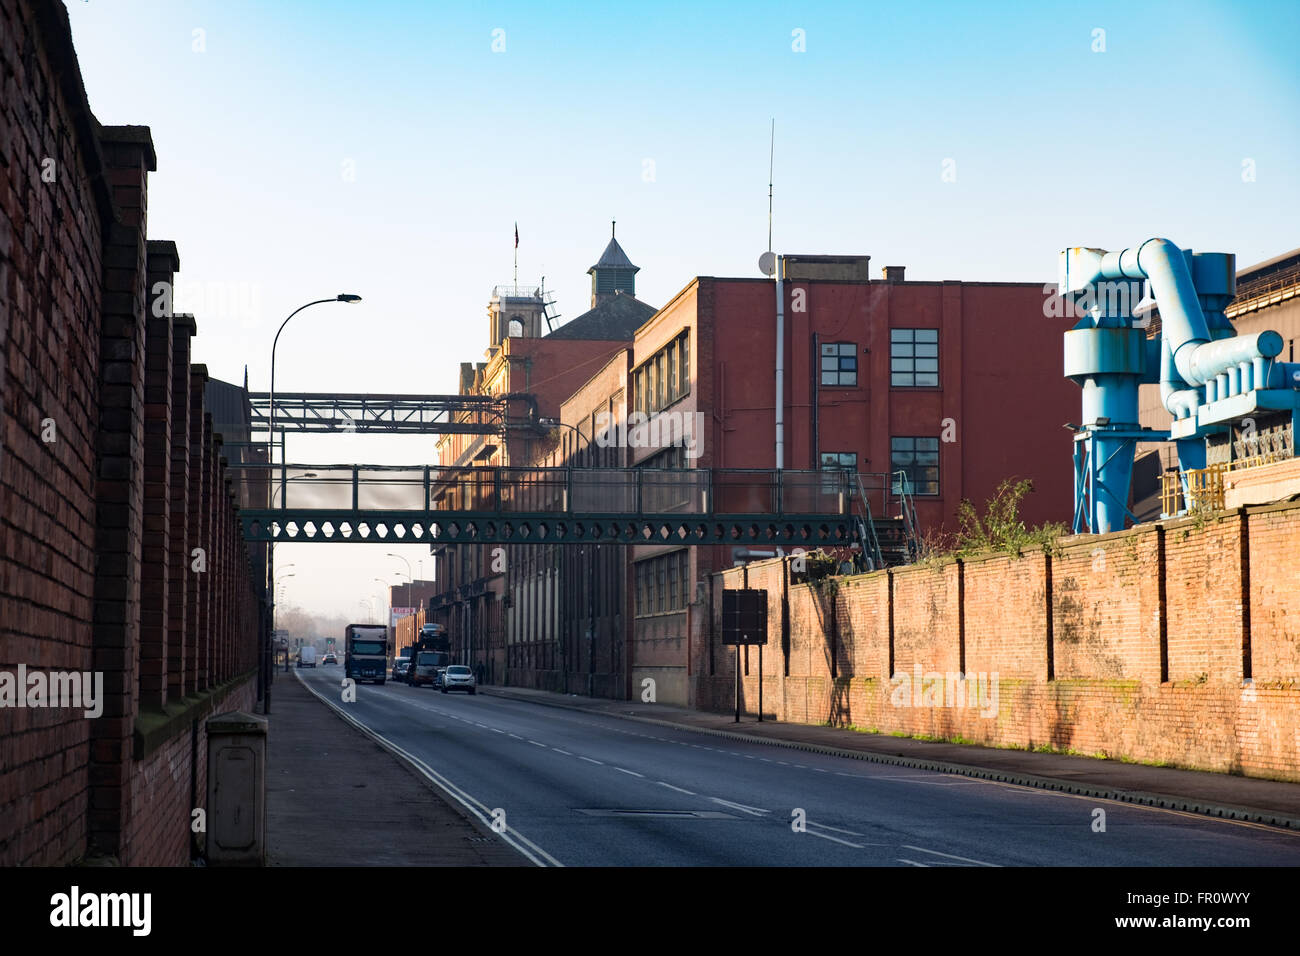 Steelworks at Sheffield, UK - Stock Image